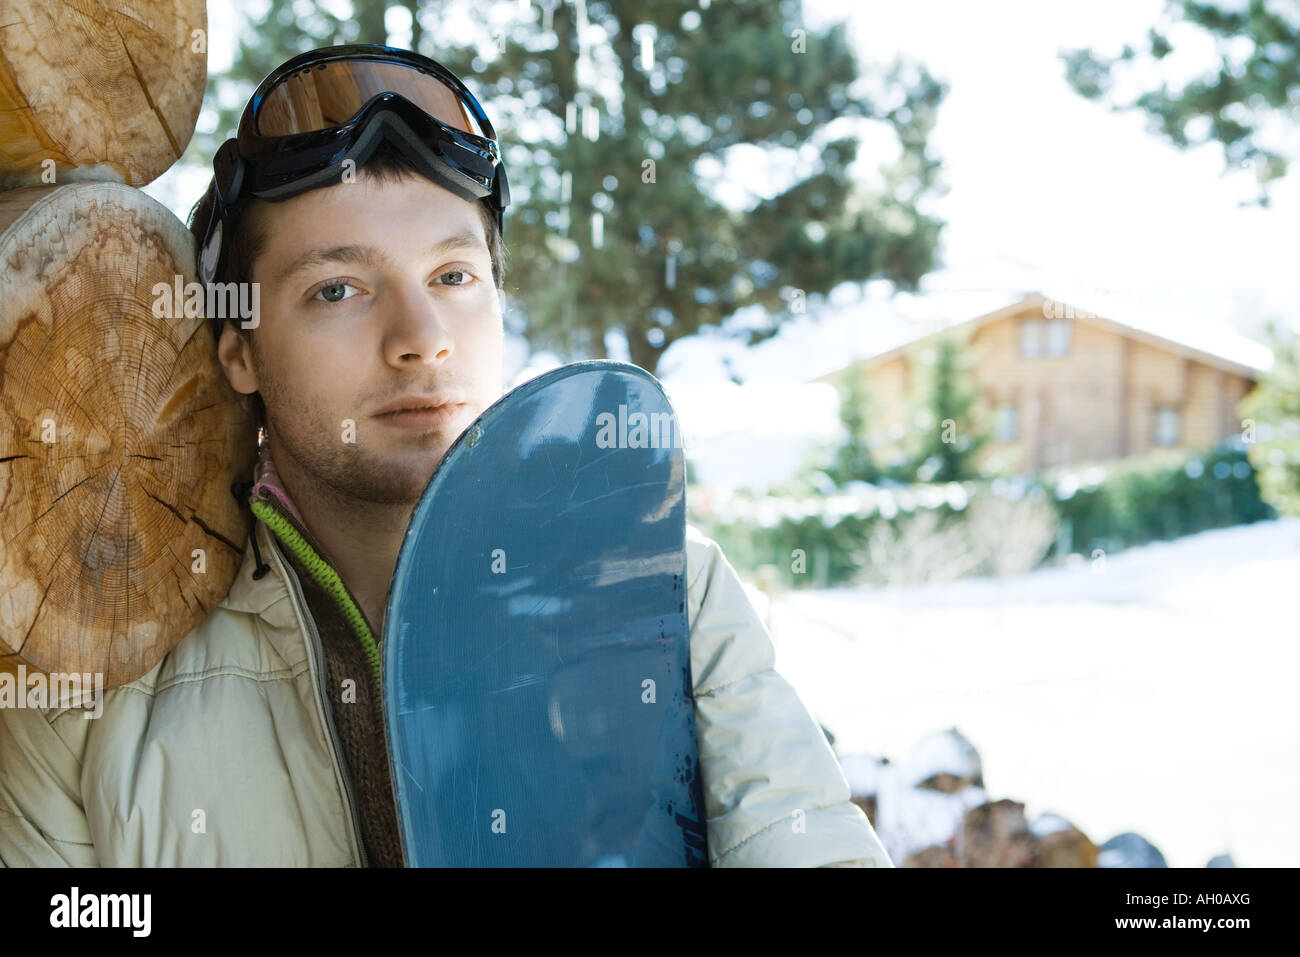 Young man with snowboard, portrait Stock Photo